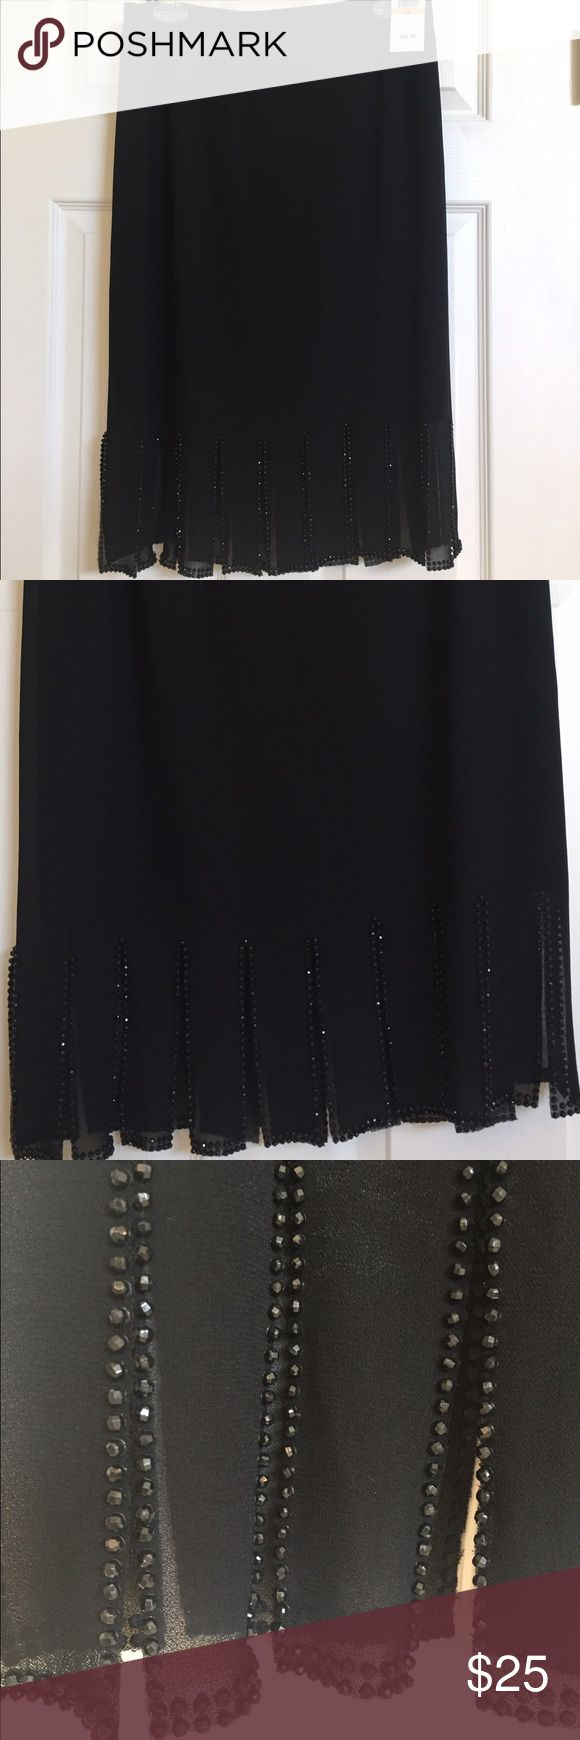 Black skirt by MSK. Size small. NWT. Black holiday skirt with fringed bottom with sparkling accents, by MSK. Size small. Skirt is 26 inches long.  NWT MSK Skirts